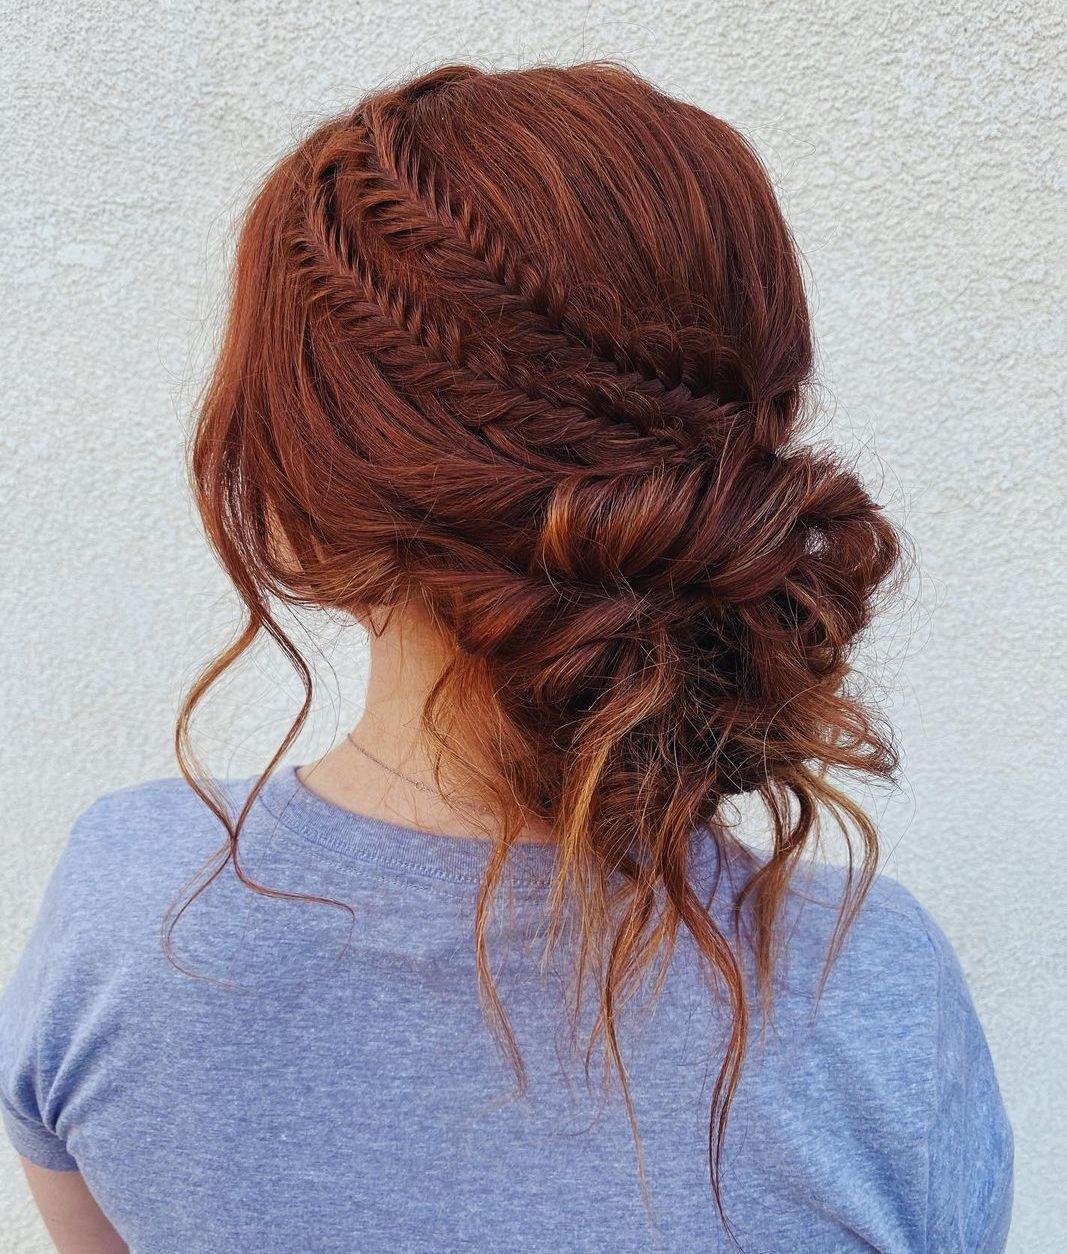 Messy Long Hair Updo with Side Braids